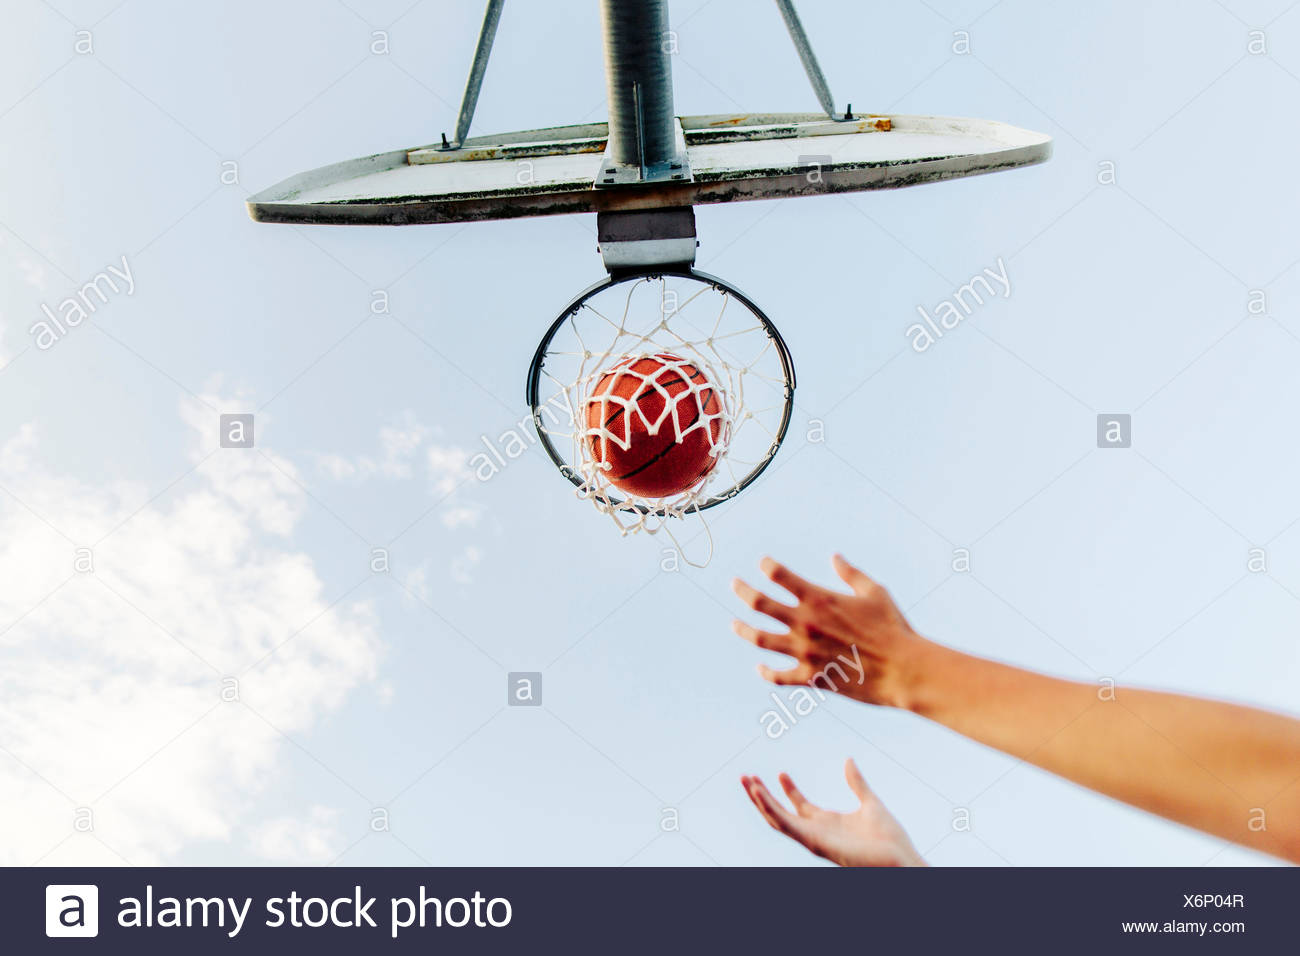 Cropped hands reaching basketball hoop against sky - Stock Image